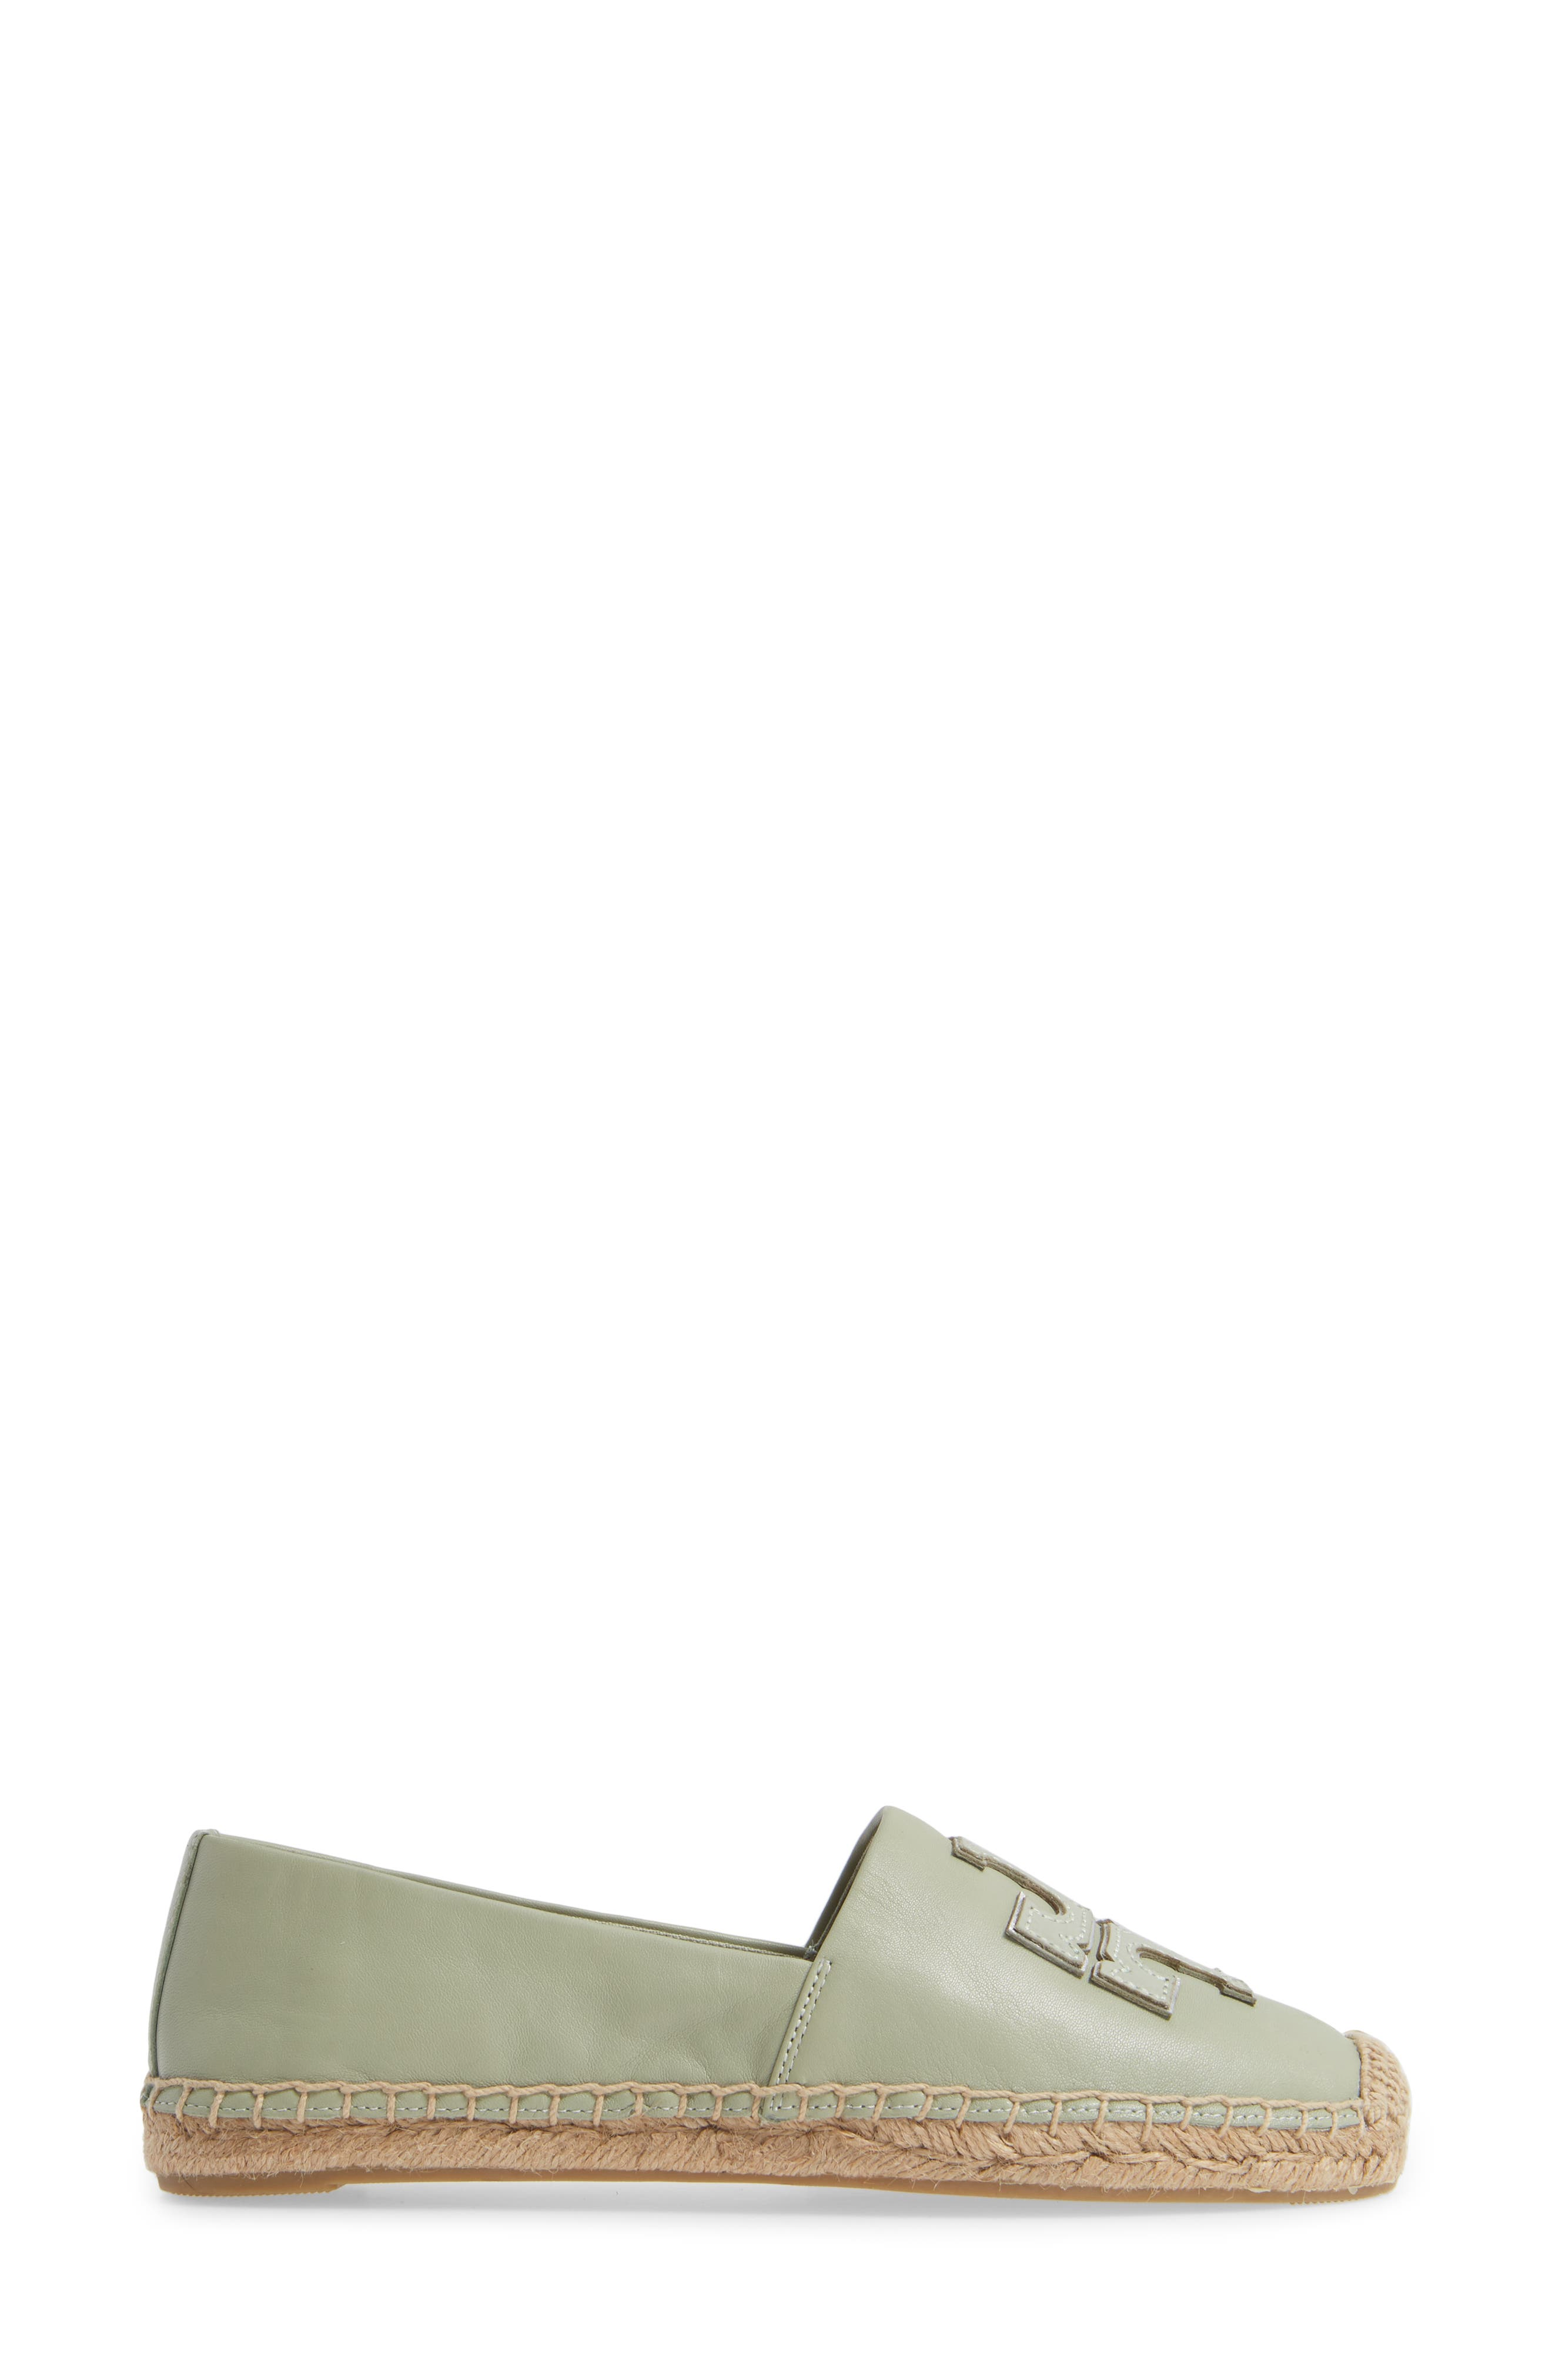 TORY BURCH, Ines Espadrille, Alternate thumbnail 3, color, GARDEN SAGE / SILVER